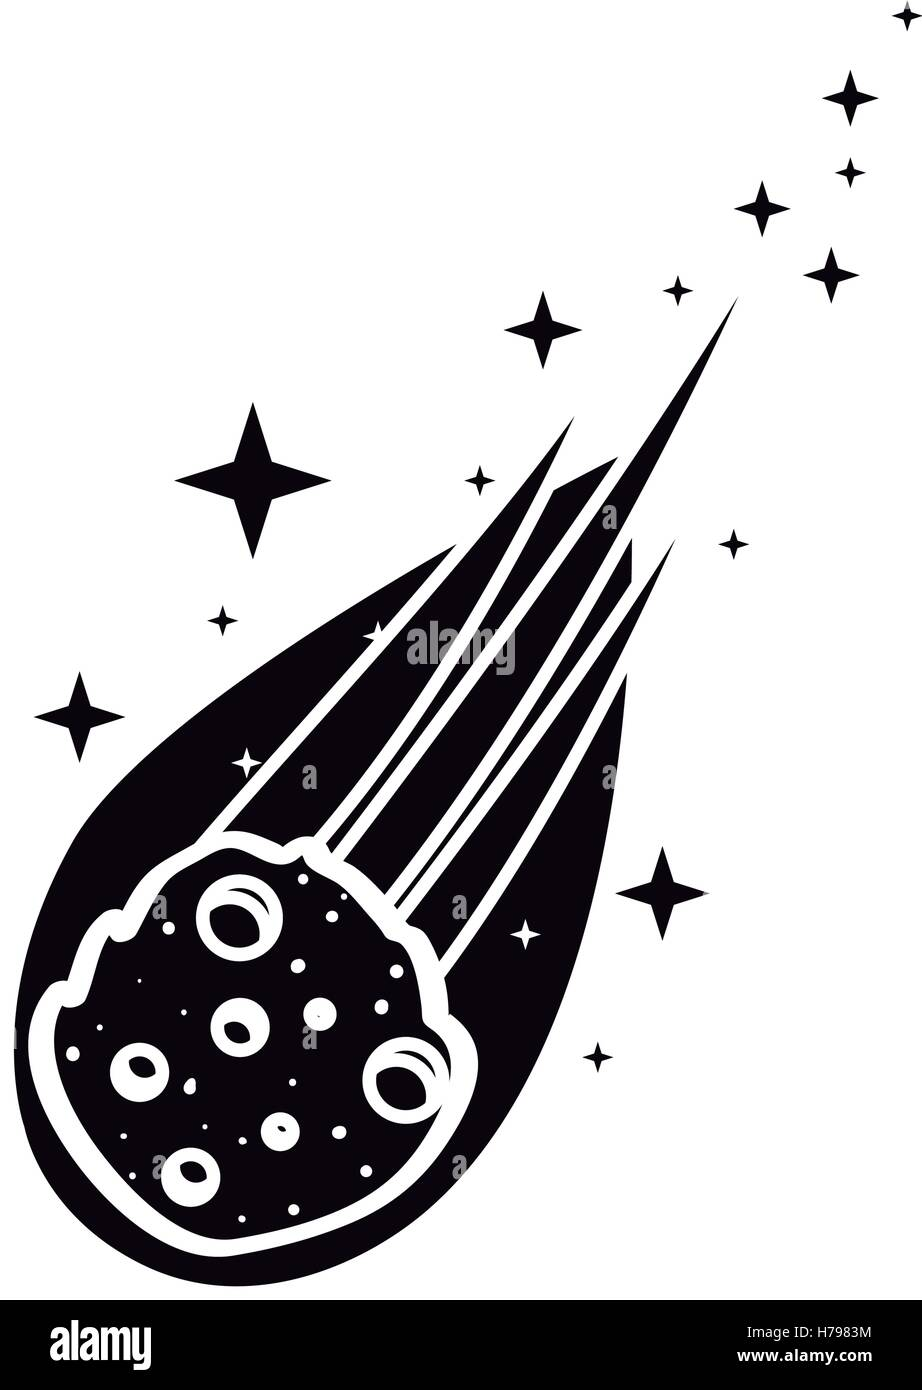 flame meteorite icon over white background. vector illustration - Stock Image